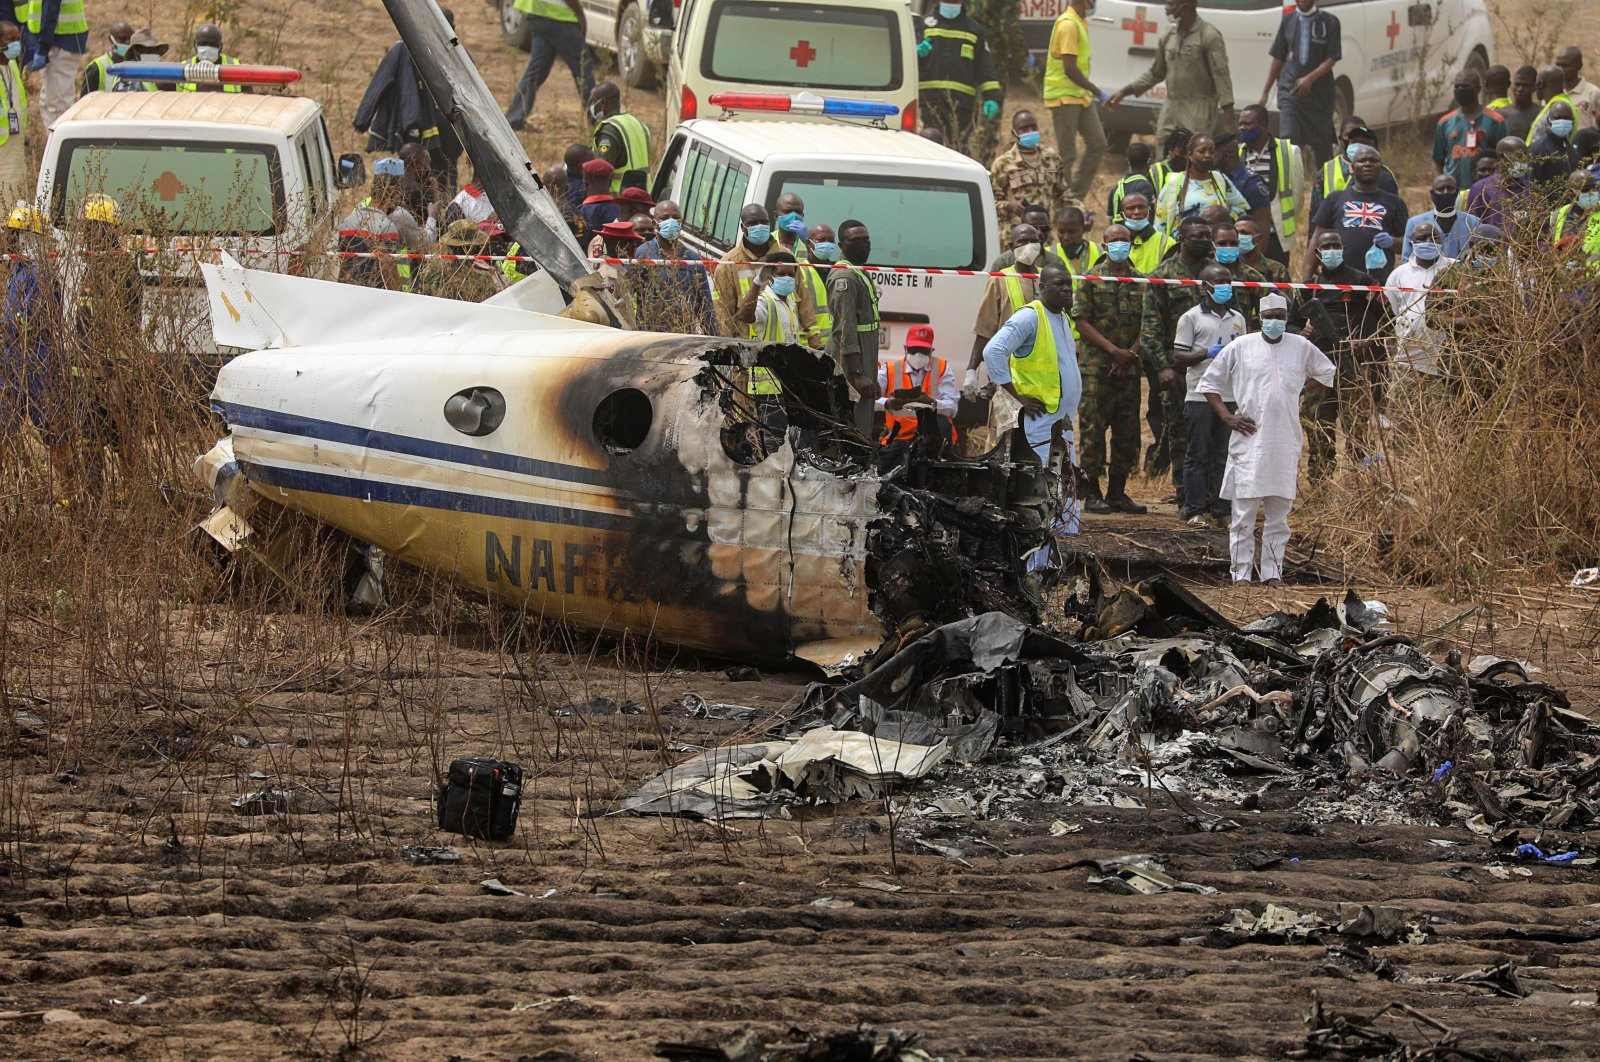 Rescuers and people gather near the debris of a Nigerian air force plane, which according to the aviation minister crashed while approaching the Abuja airport runway, in Abuja, Nigeria, Feb. 21, 2021. (Reuters Photo)